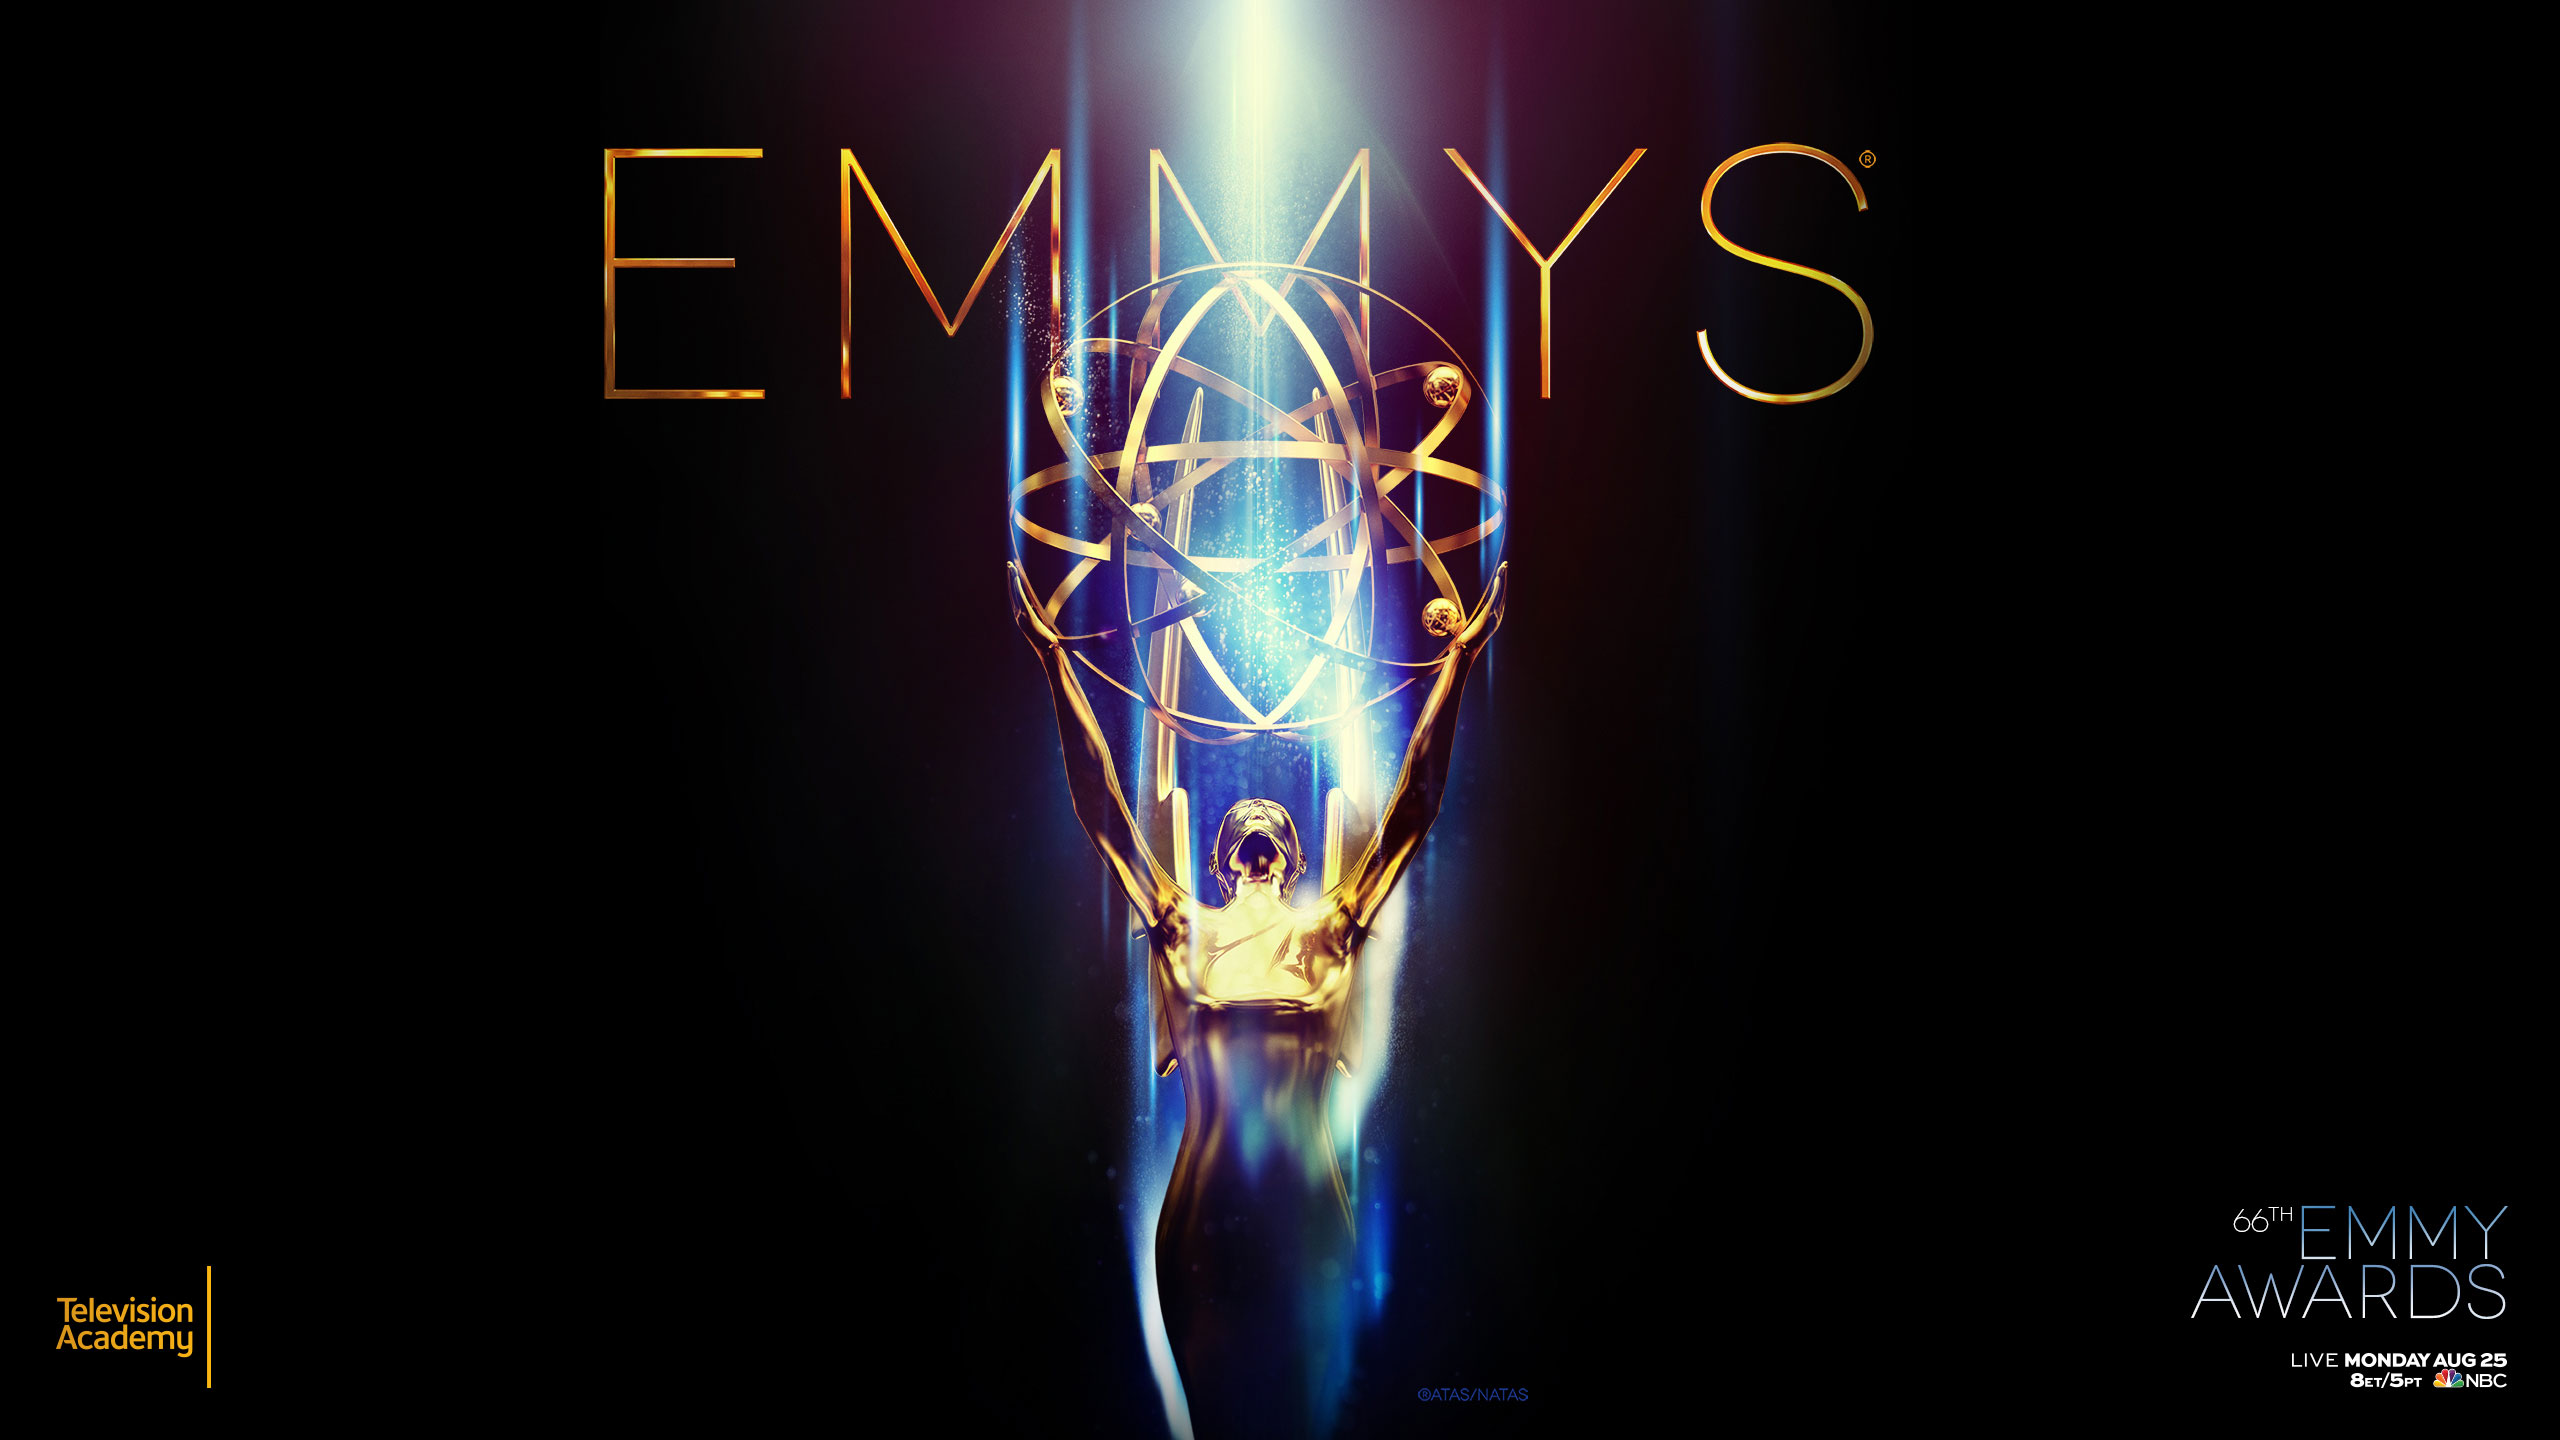 Breaking Bad and Game of Thrones top the 2014 Emmy Awards ...